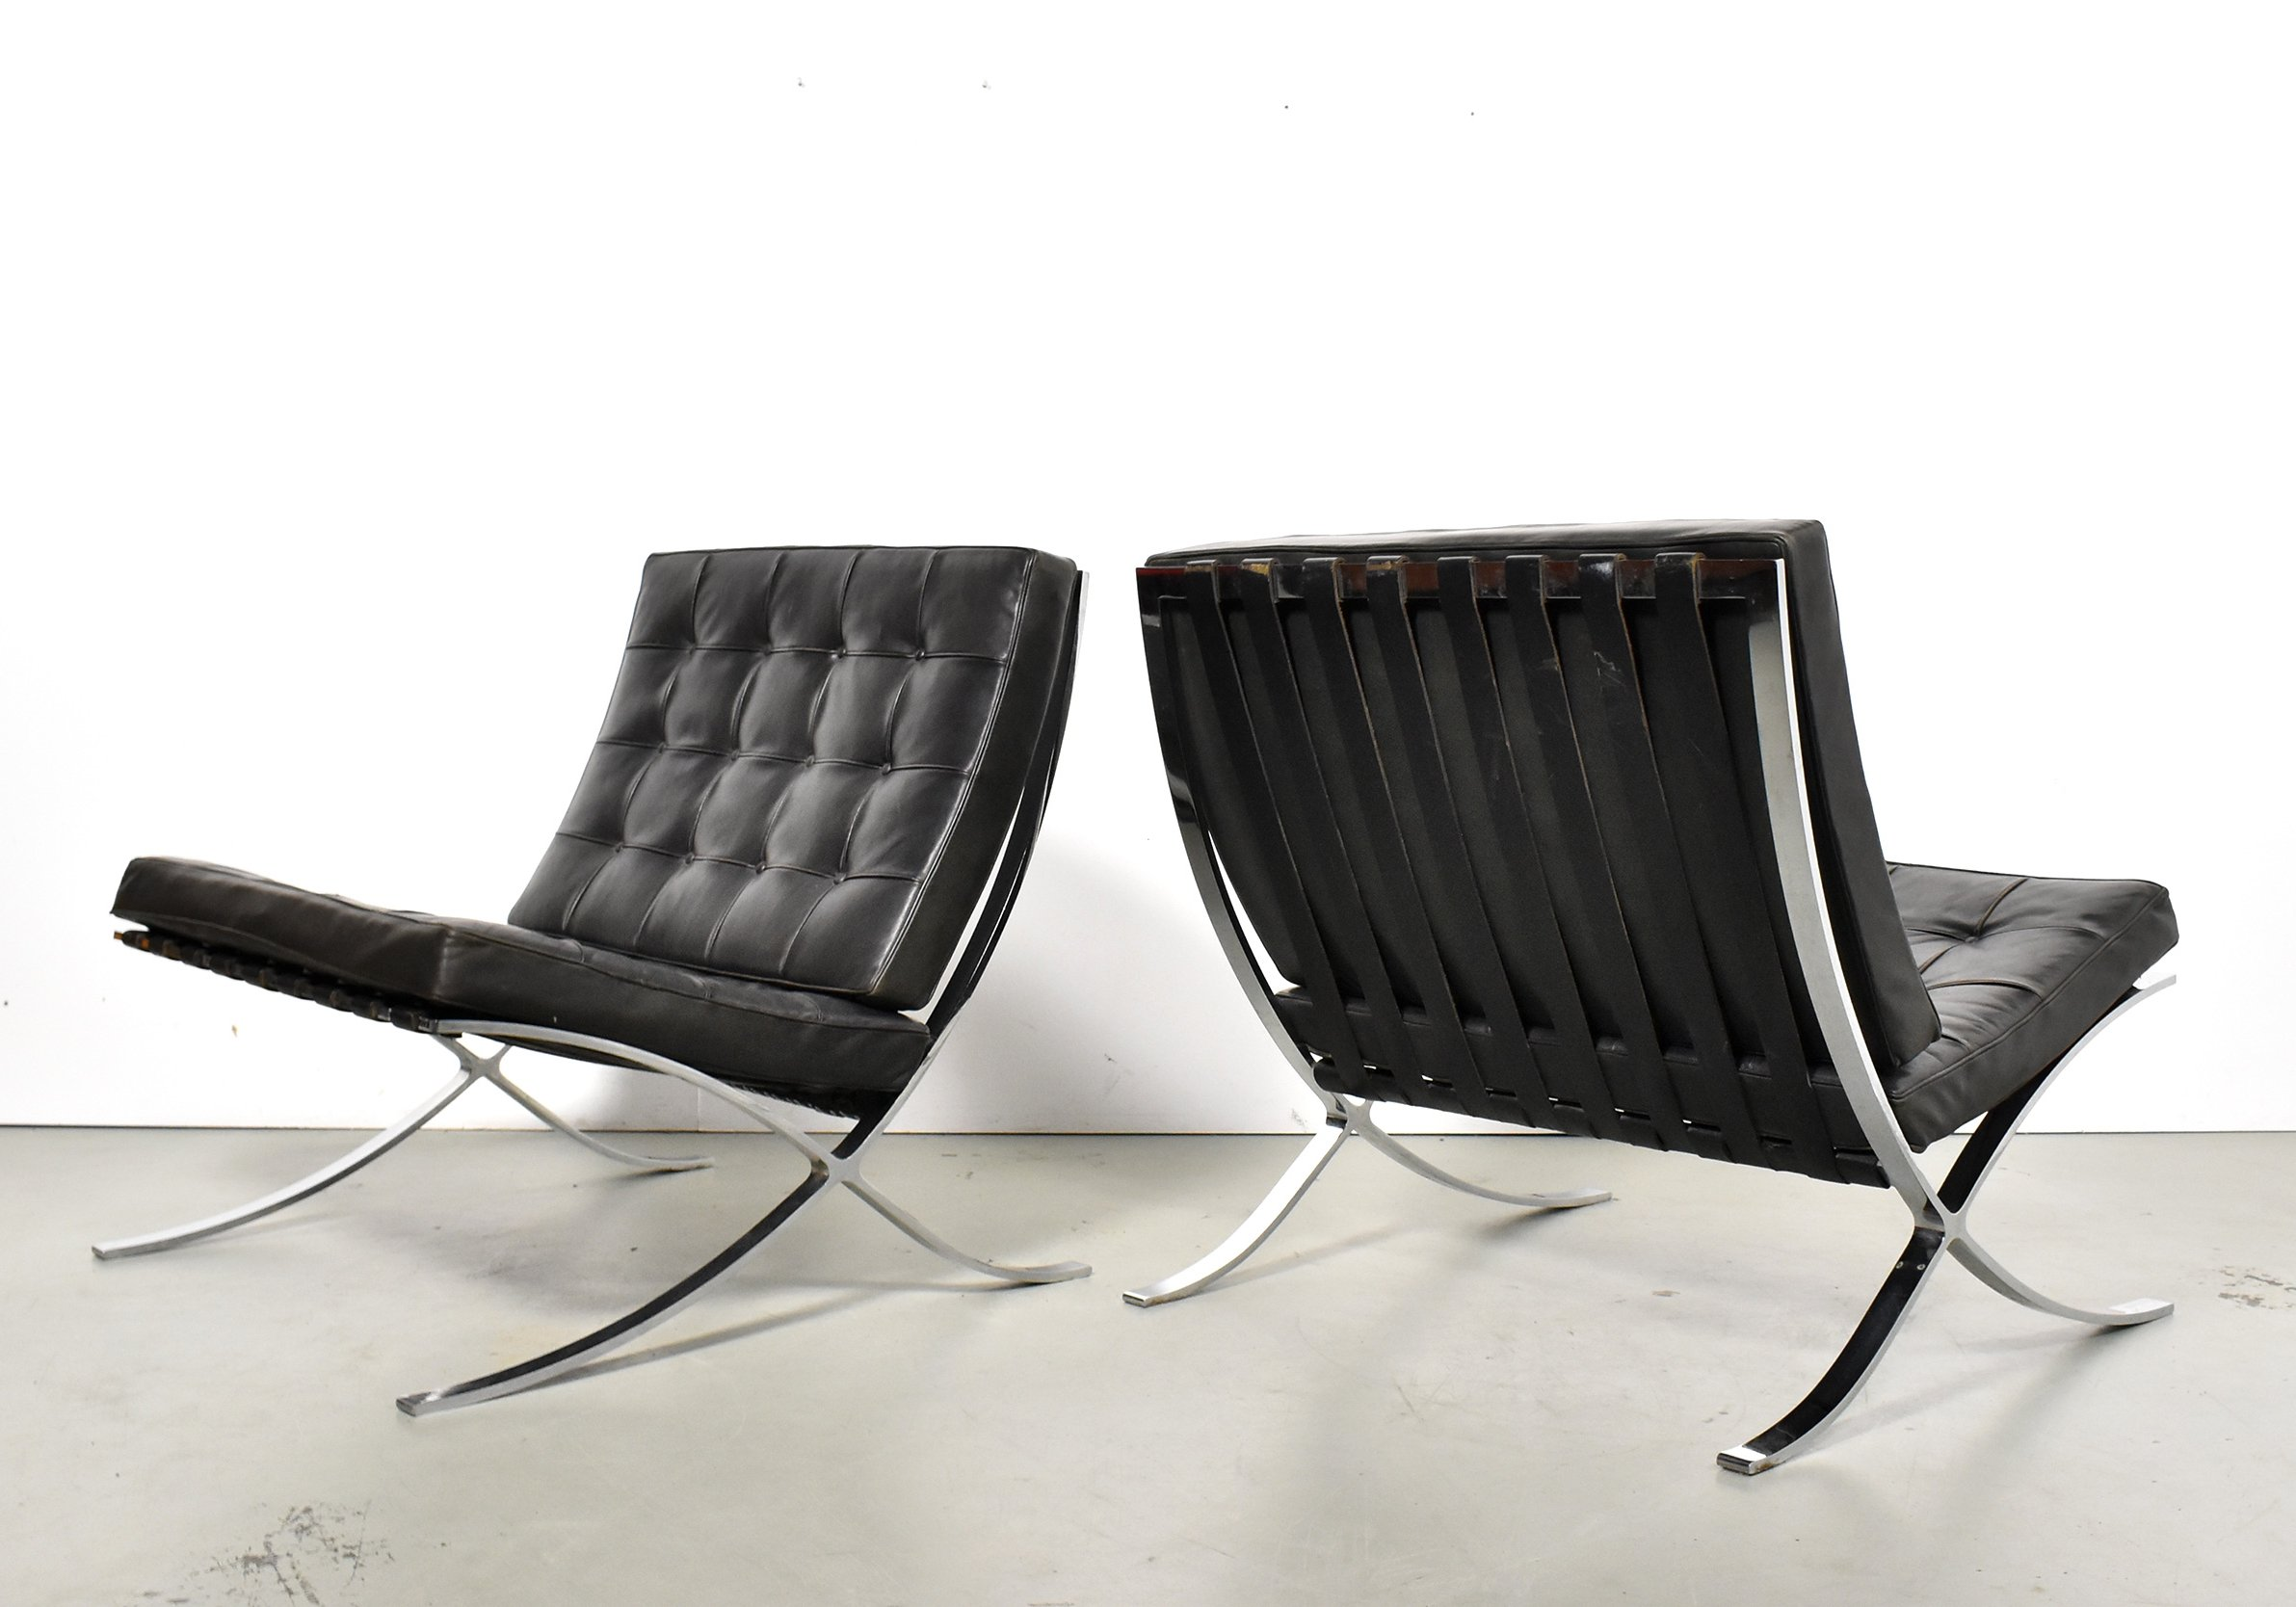 Early Pair Of Ludwig Mies Van Der Rohe Barcelona Chairs For Knoll International 1960s 118696